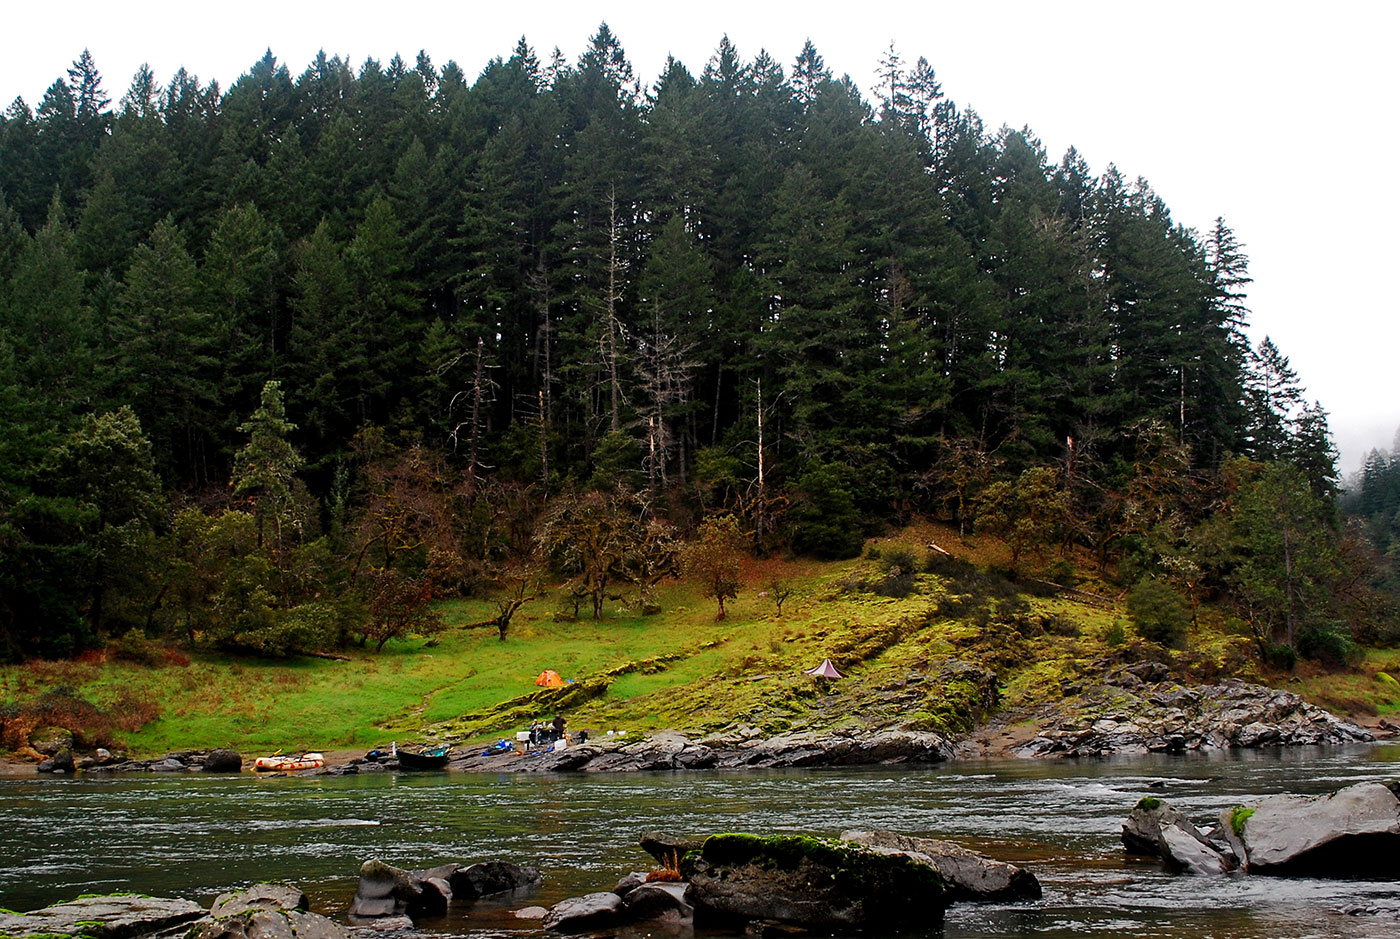 Looking across the river toward Upper Tacoma, Rogue River.